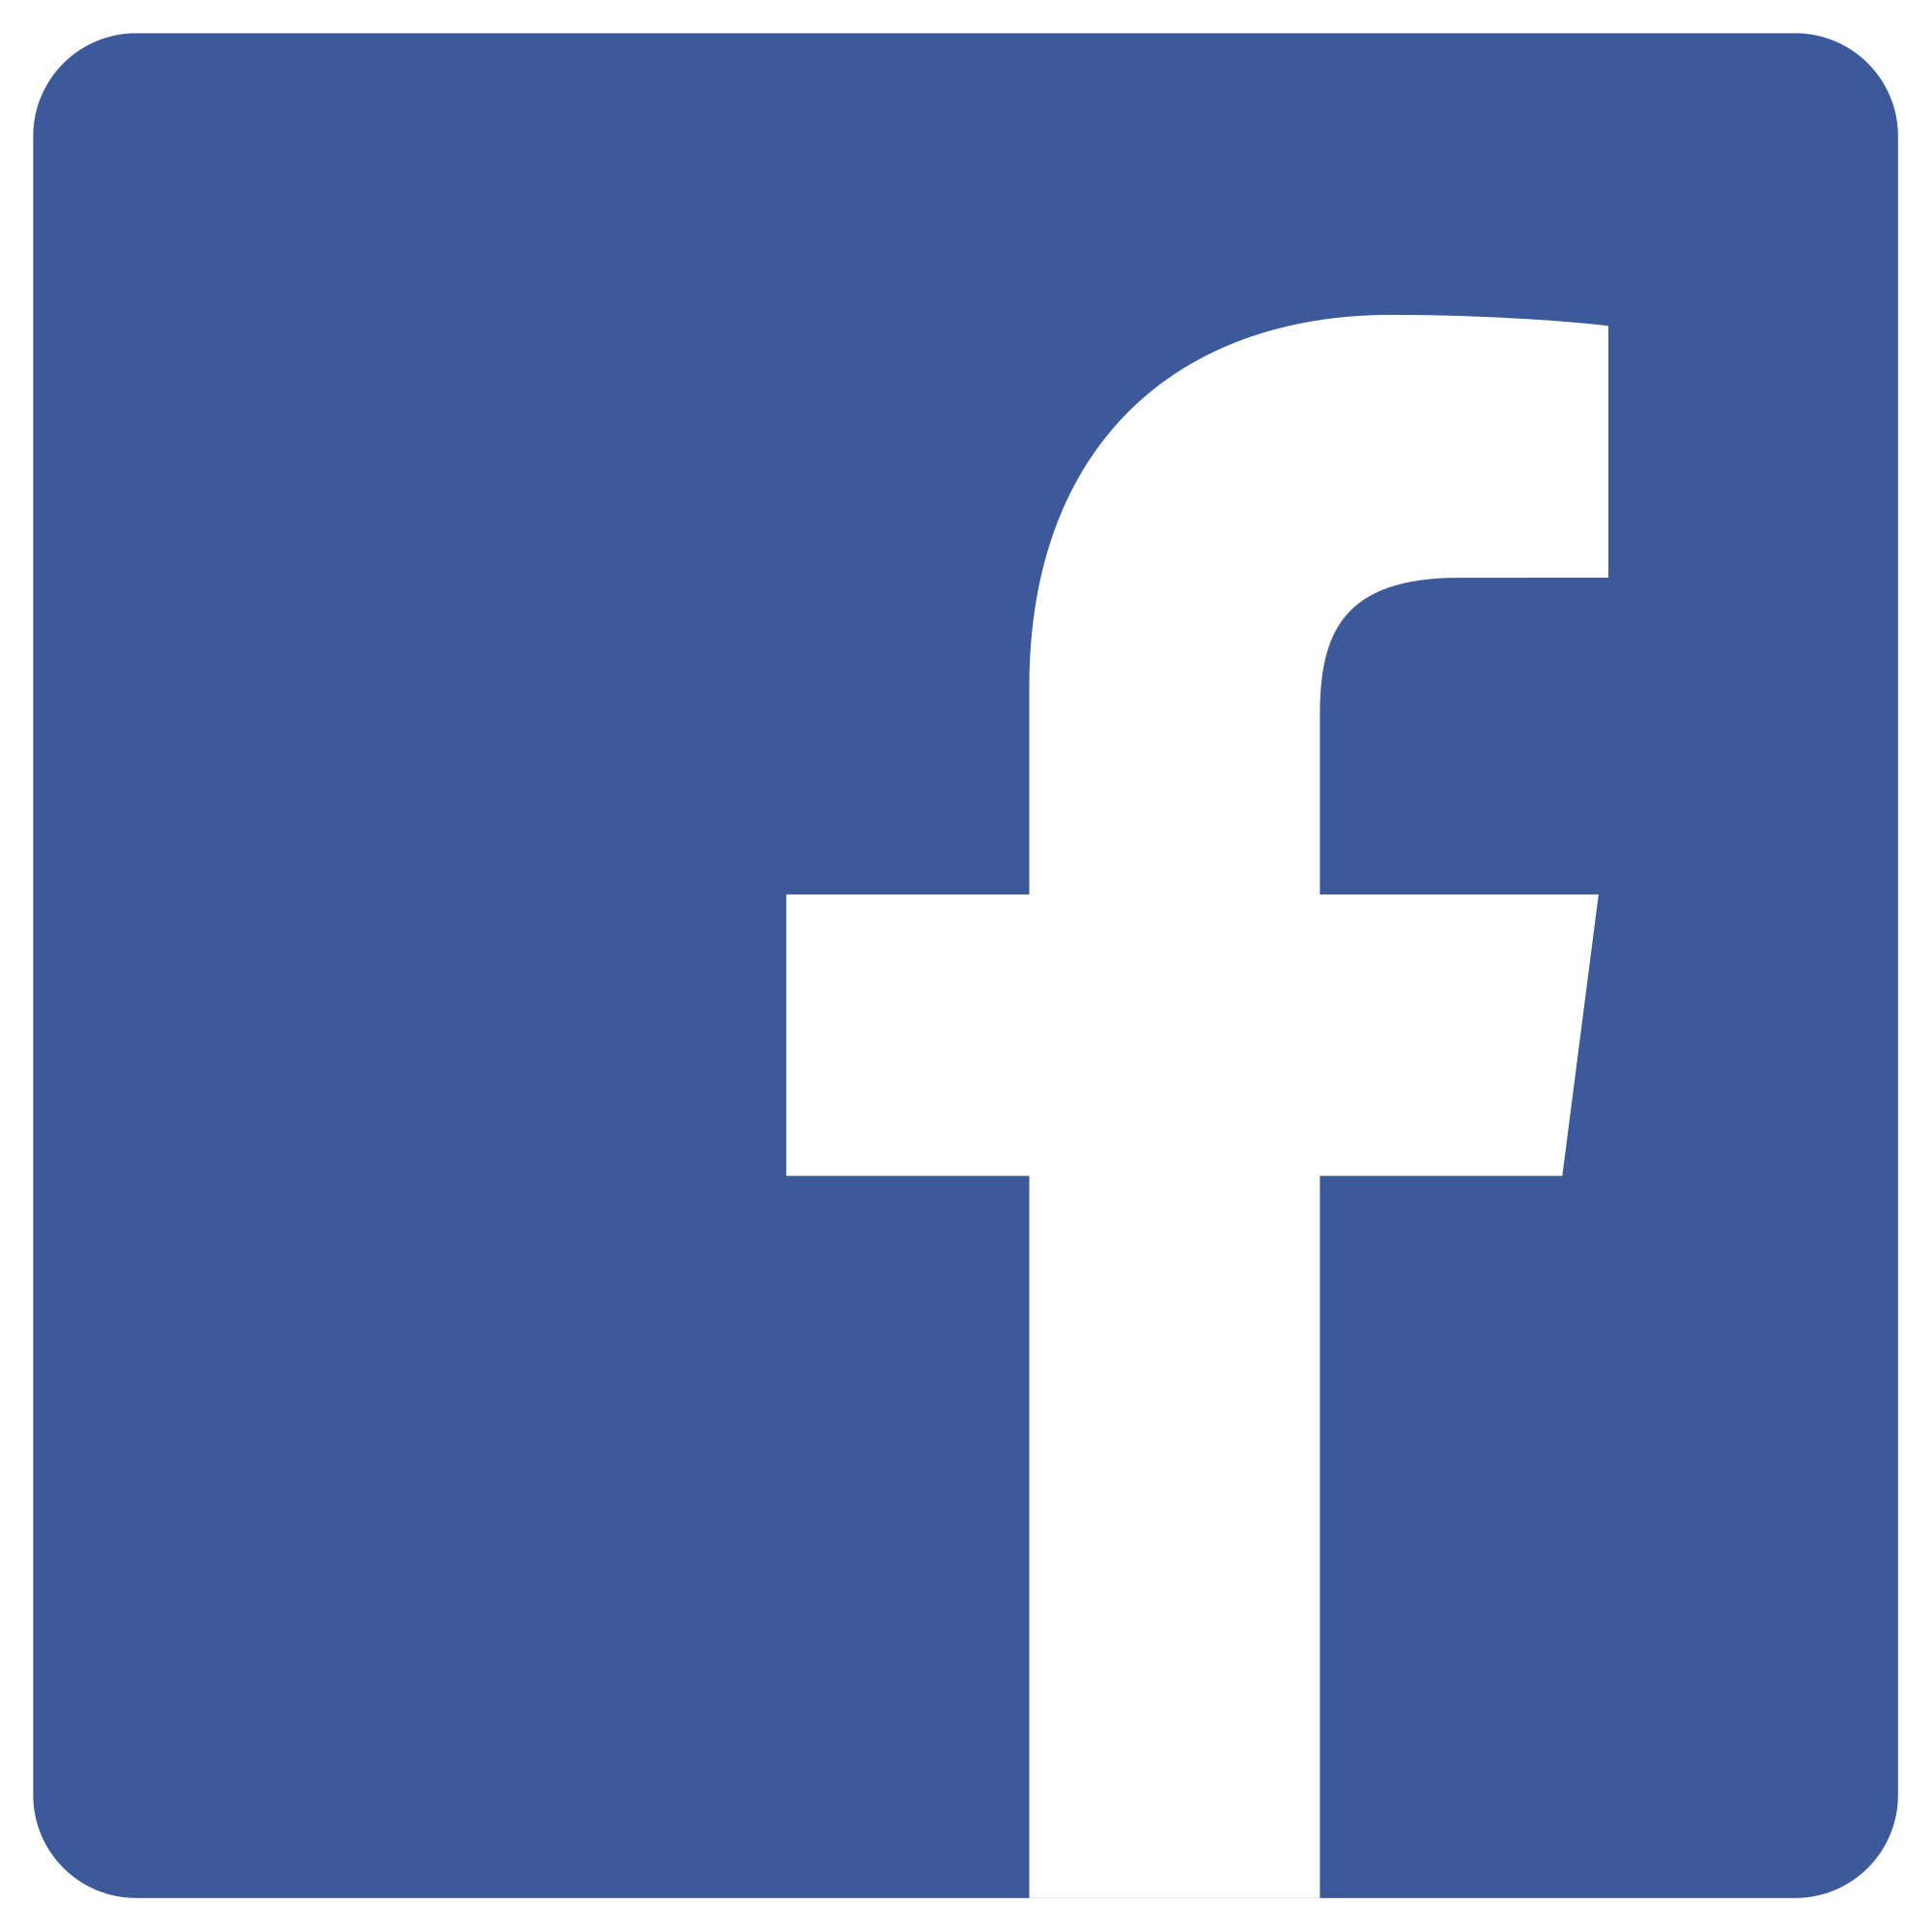 Facebook - Myriad Connect USSD services